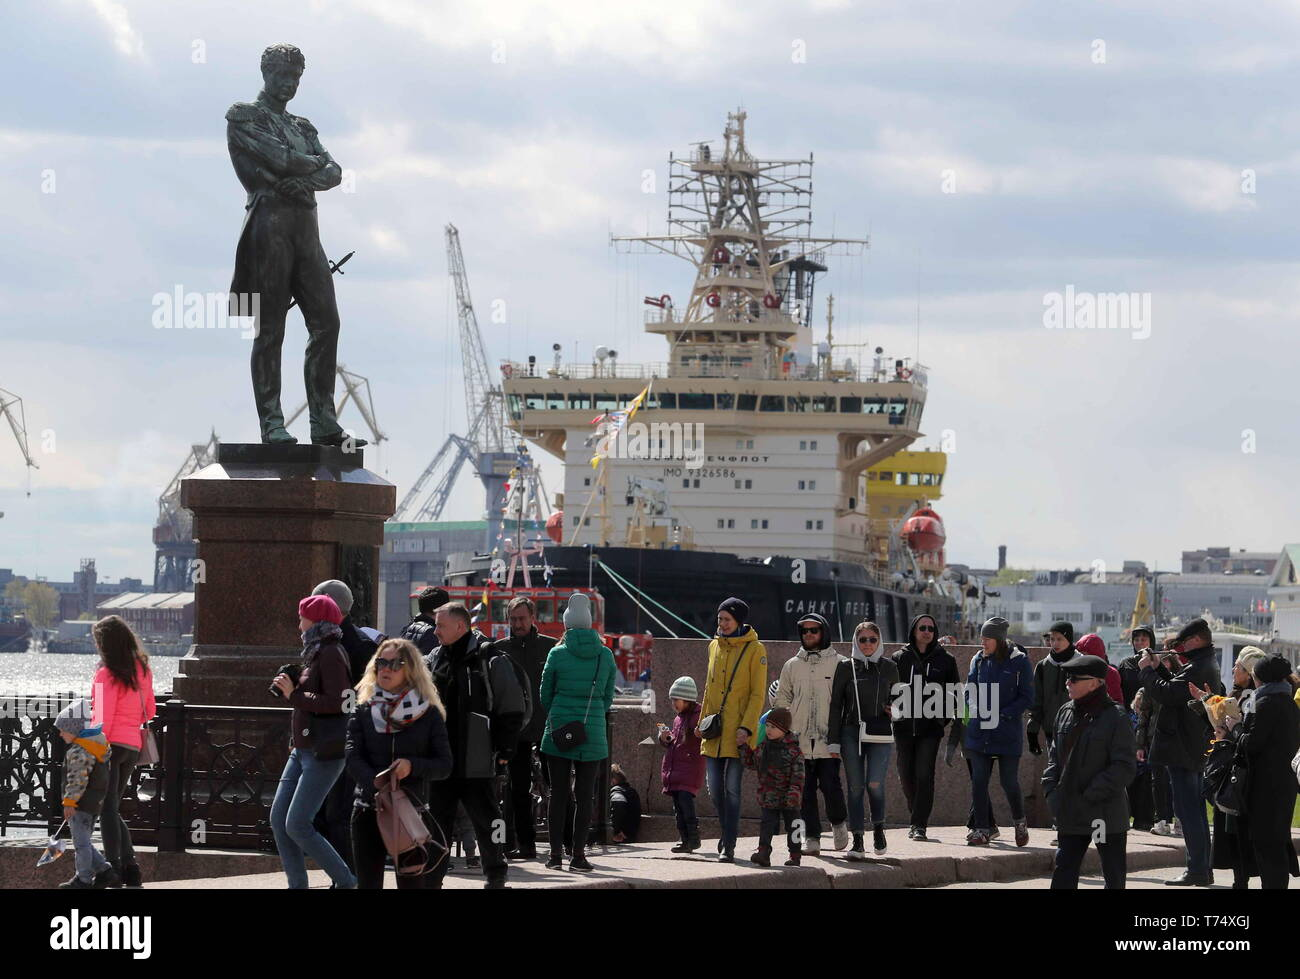 St Petersburg, Russia. 04th May, 2019. ST PETERSBURG, RUSSIA - MAY 4, 2019: A monument to Adam Johann von Krusenstern (Ivan Kruzenshtern), an admiral and explorer who led the first Russian circumnavigation of the Earth in the early 1800s, in front of the icebreaker Sankt Peterburg at a ceremony to open the 2019 Icebreaker Festival. Alexander Demianchuk/TASS Credit: ITAR-TASS News Agency/Alamy Live News Stock Photo